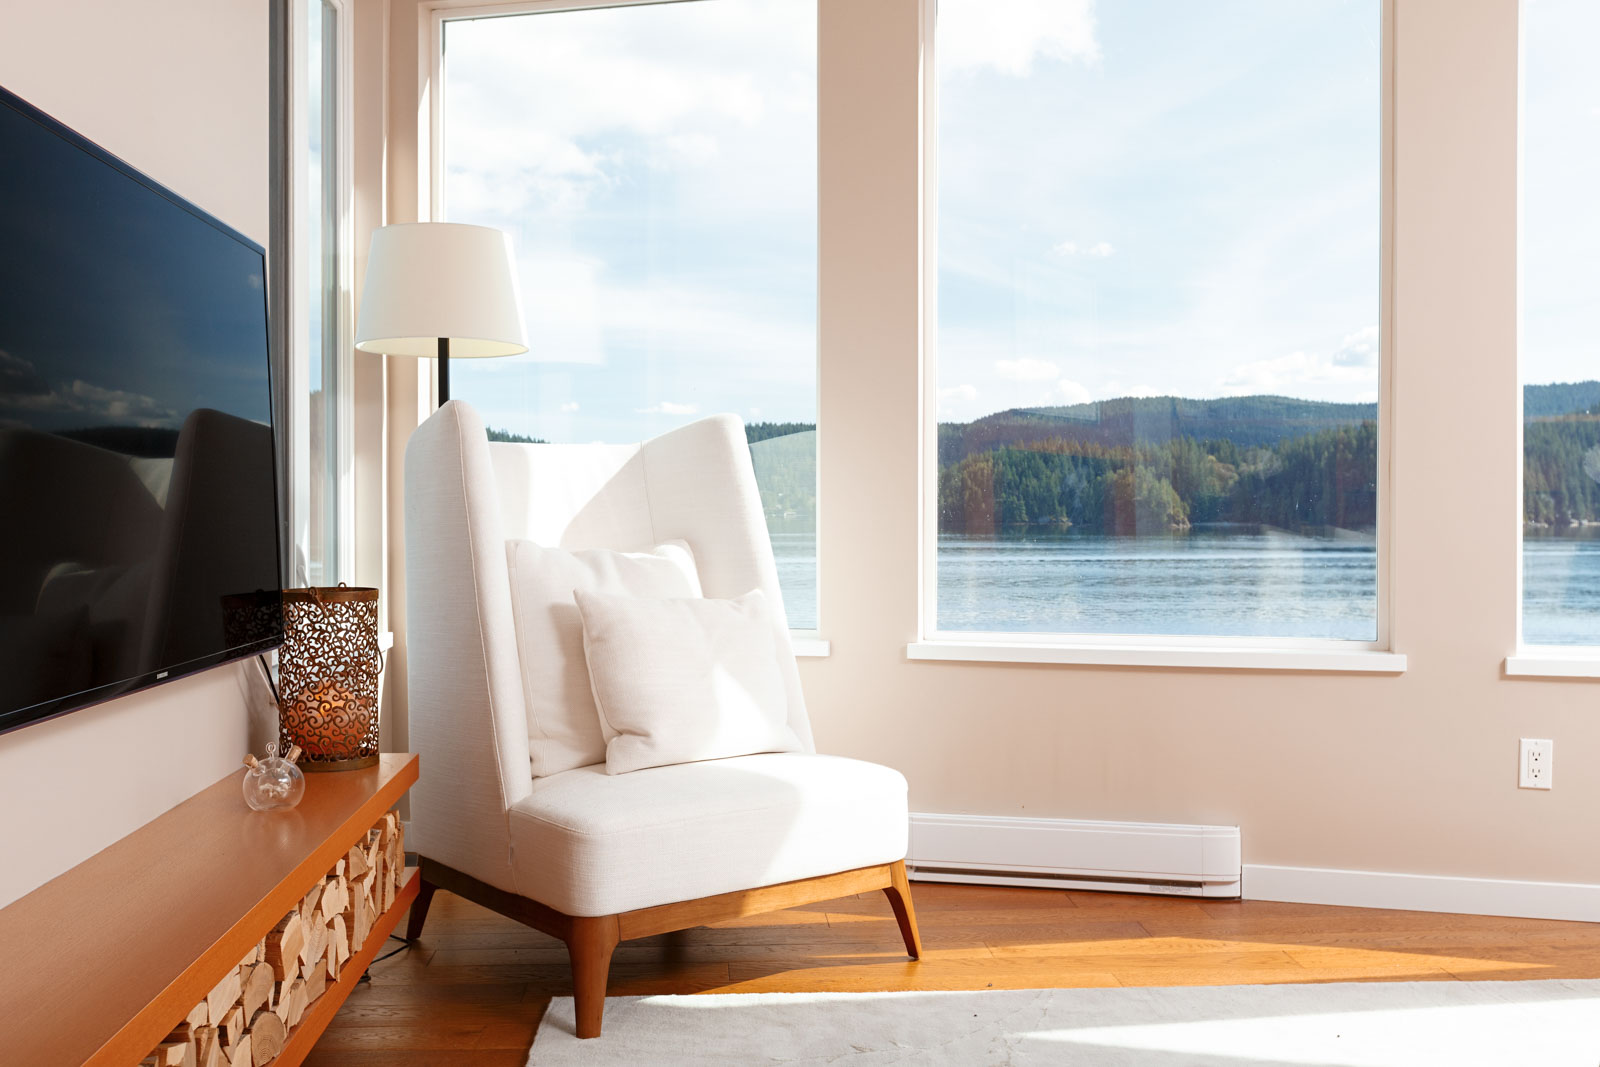 White chaise overlooking waterfront views from North Vancouver luxury rental.